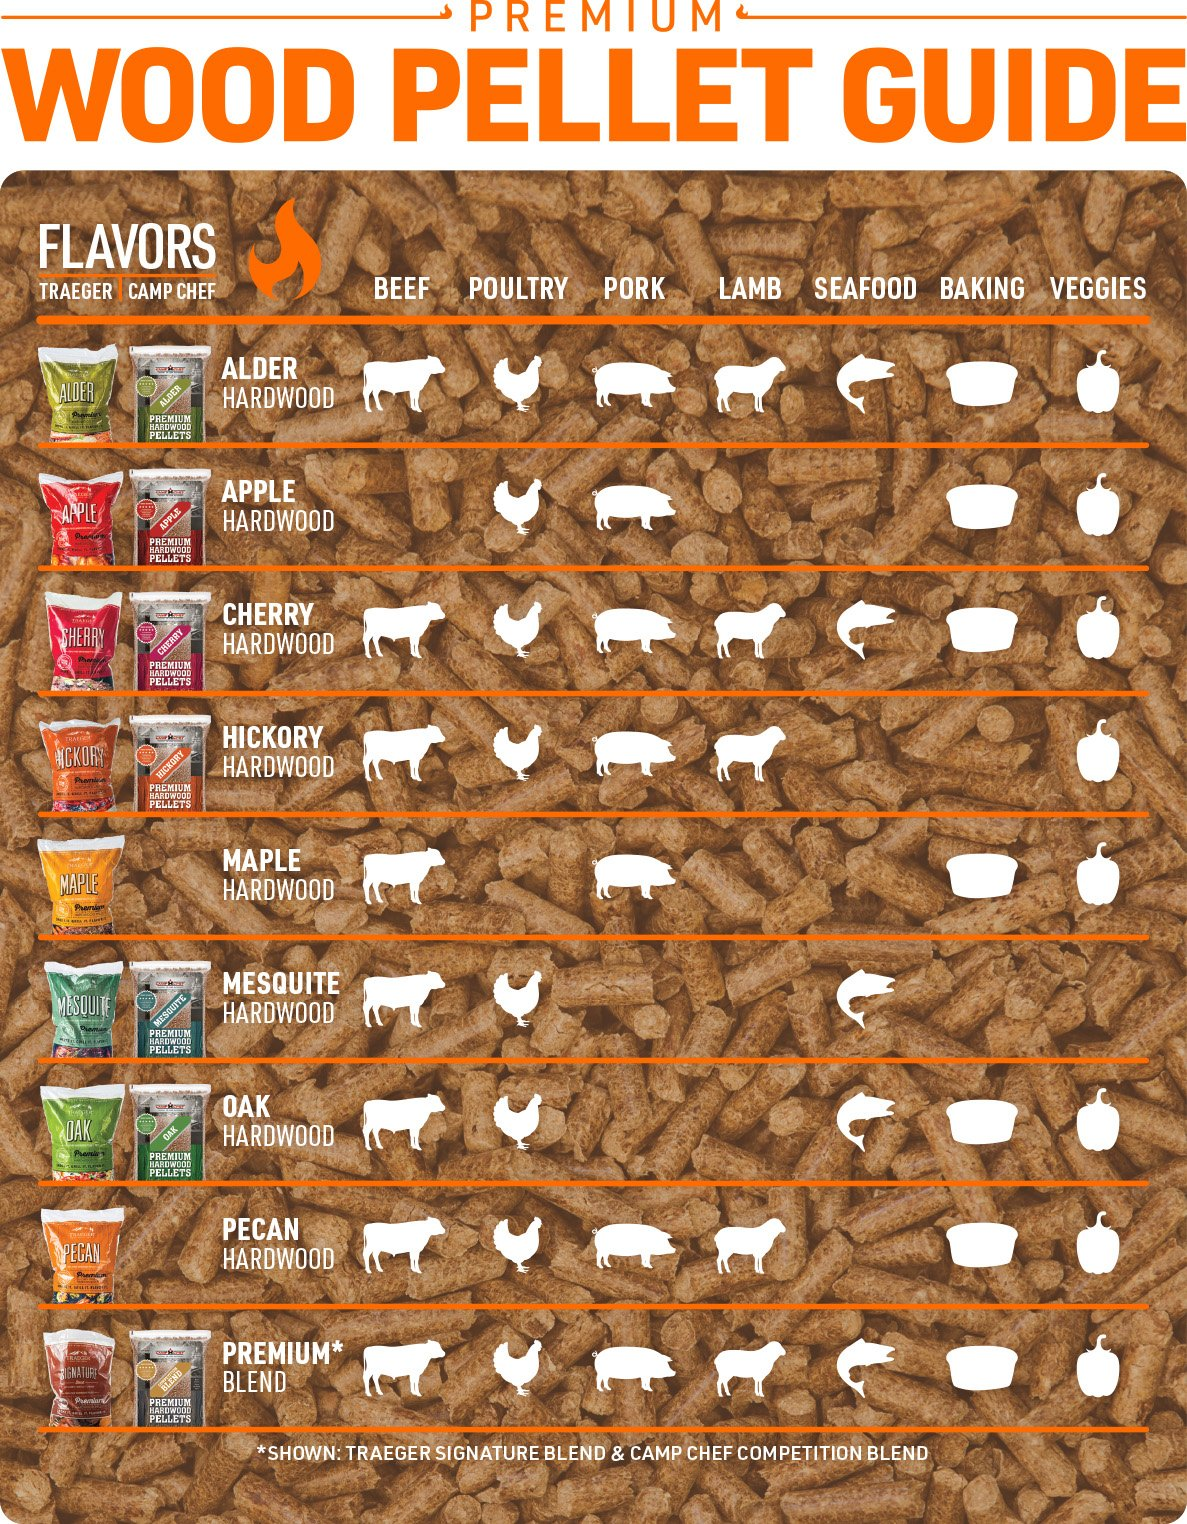 guide to wood pellet flavors